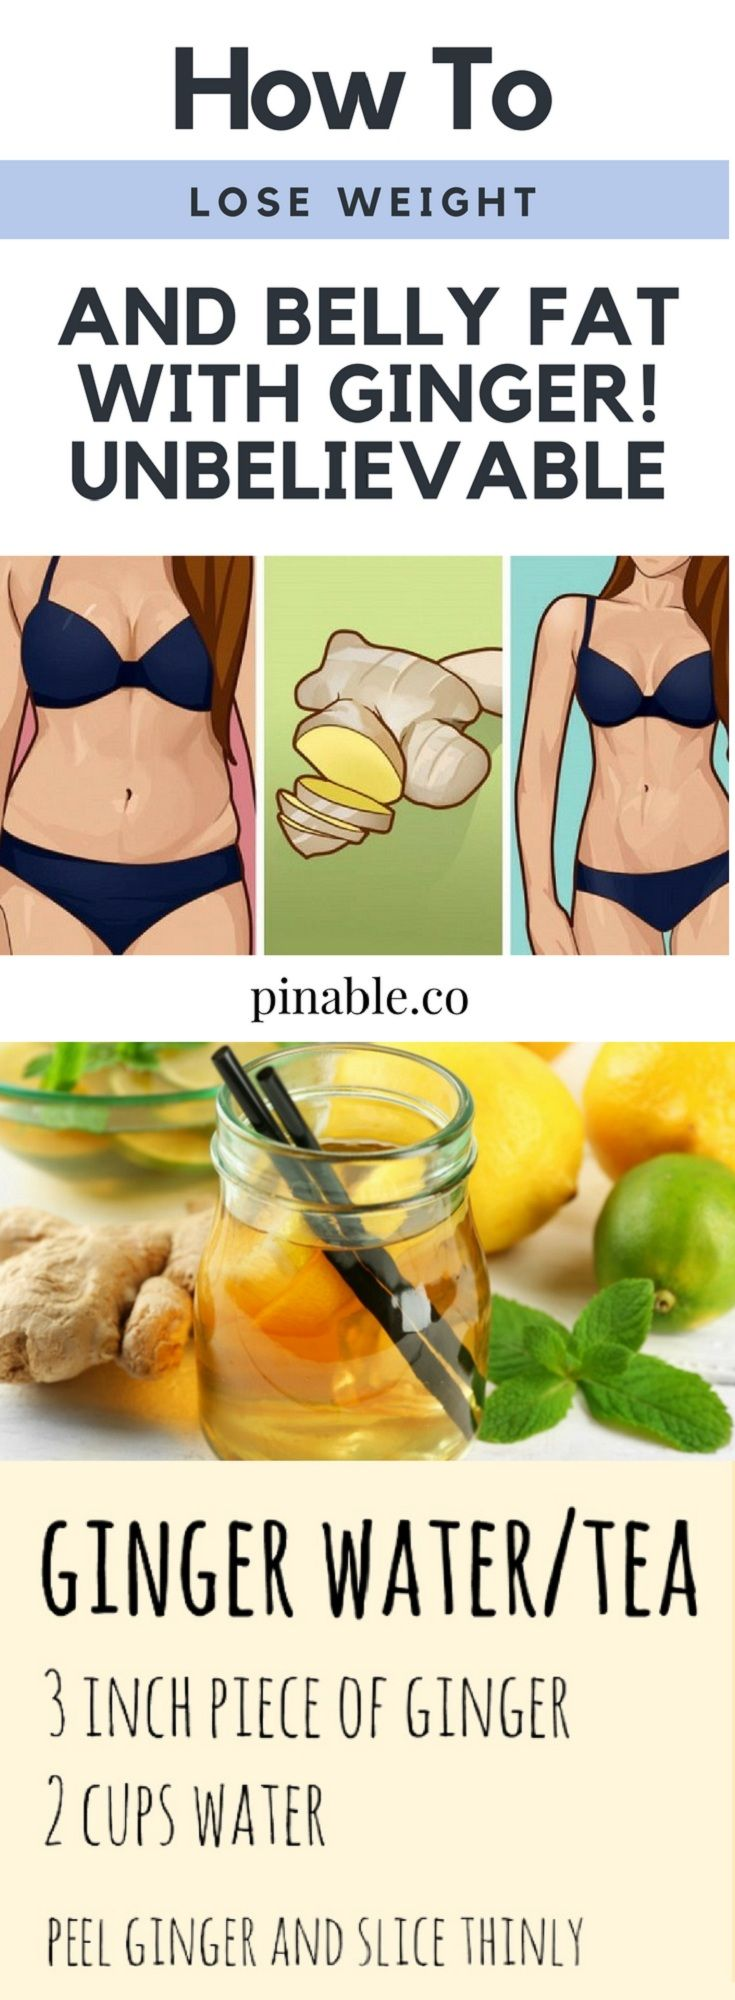 eating ginger and weight loss